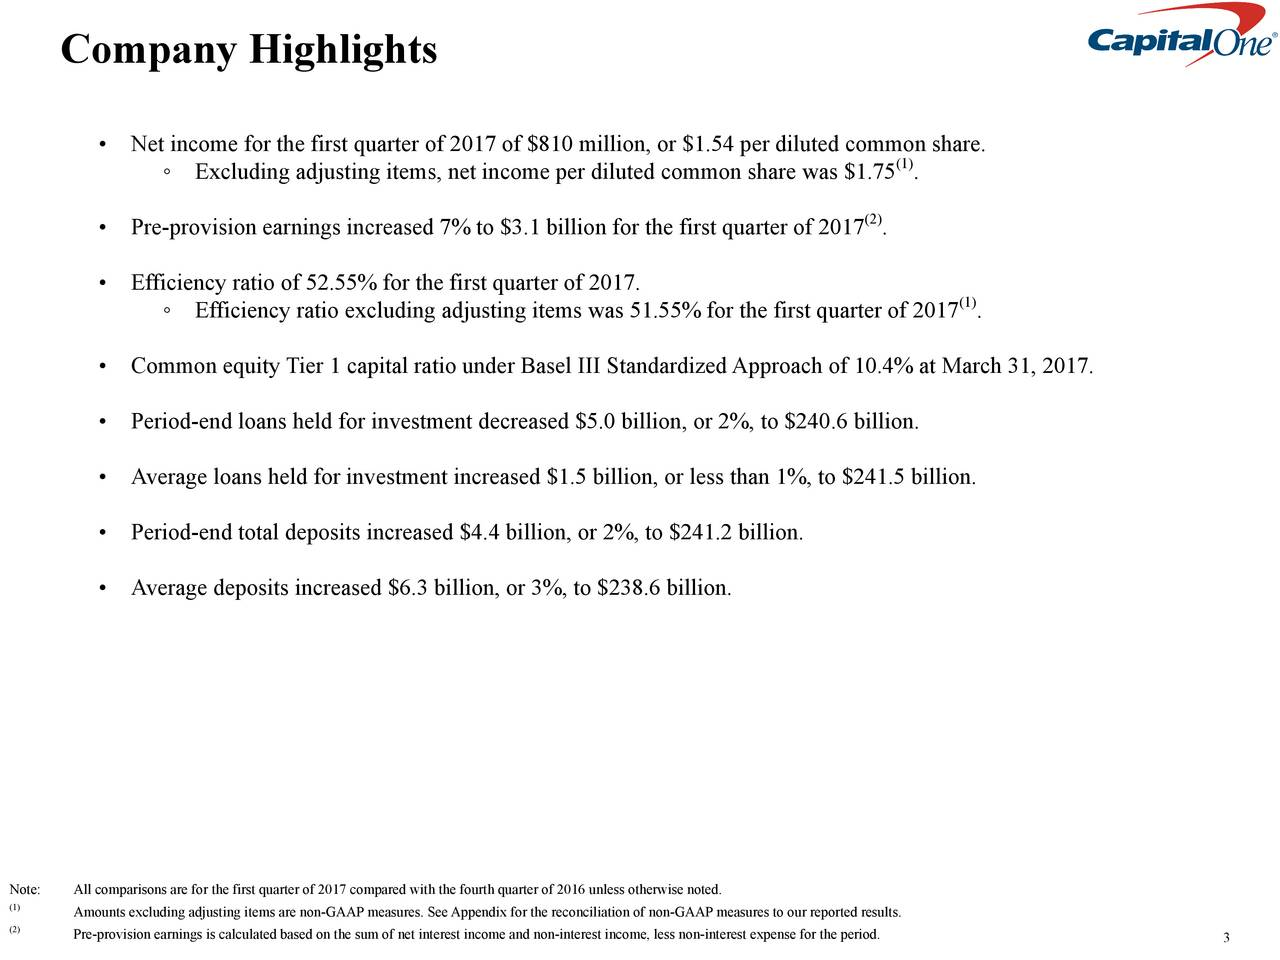 Net income for the first quarter of 2017 of $810 million, or $1.54 per diluted common share. (1) Excluding adjusting items, net income per diluted common share was $1.75 . Pre-provision earnings increased 7% to $3.1 billion for the first quarter of 2017 . (2) Efficiency ratio of 52.55% for the first quarter of 2017. Efficiency ratio excluding adjusting items was 51.55% for the first quarter of 2017 . (1) Common equity Tier 1 capital ratio under Basel III StandardizedApproach of 10.4% at March31, 2017. Period-end loans held for investment decreased $5.0 billion, or 2%, to $240.6 billion. Average loans held for investment increased $1.5 billion, or less than 1%, to $241.5 billion. Period-end total deposits increased $4.4 billion, or 2%, to $241.2 billion. Average deposits increased $6.3 billion, or 3%, to $238.6 billion. Note: All comparisons are for the first quarter of 2017 compared with the fourth quarter of 2016 unless otherwise noted. (1) Amounts excluding adjusting items are non-GAAP measures. SeeAppendix for the reconciliation of non-GAAP measures to our reported results. (2) Pre-provision earnings is calculated based on the sum of net interest income and non-interest income, less non-interest expense for the period. 3